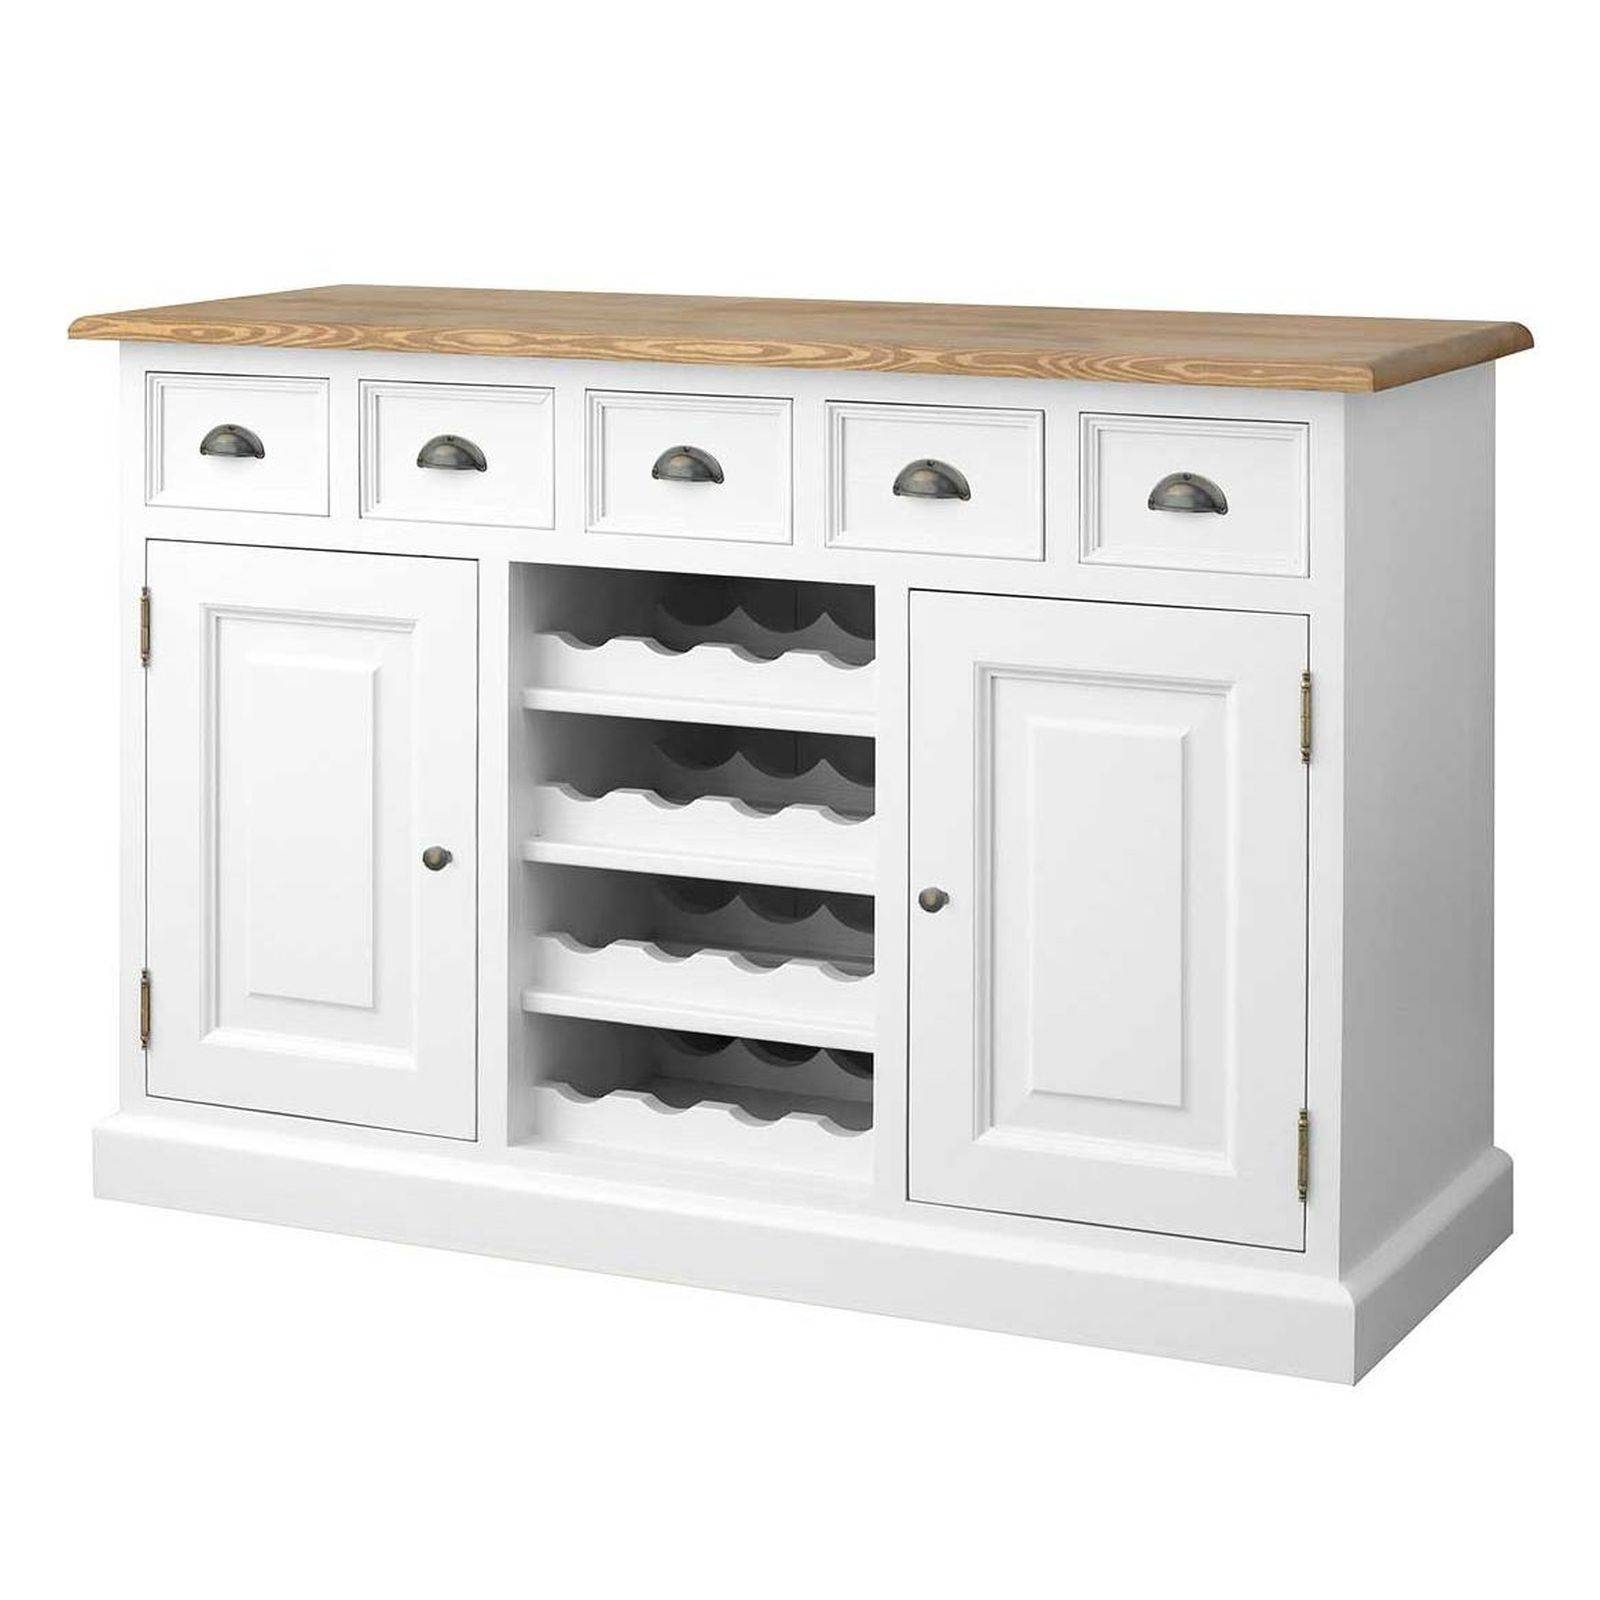 Harrogate White Painted Pine Furniture Sideboard With Wine Rack With Regard To White Sideboards With Wine Rack (#5 of 15)